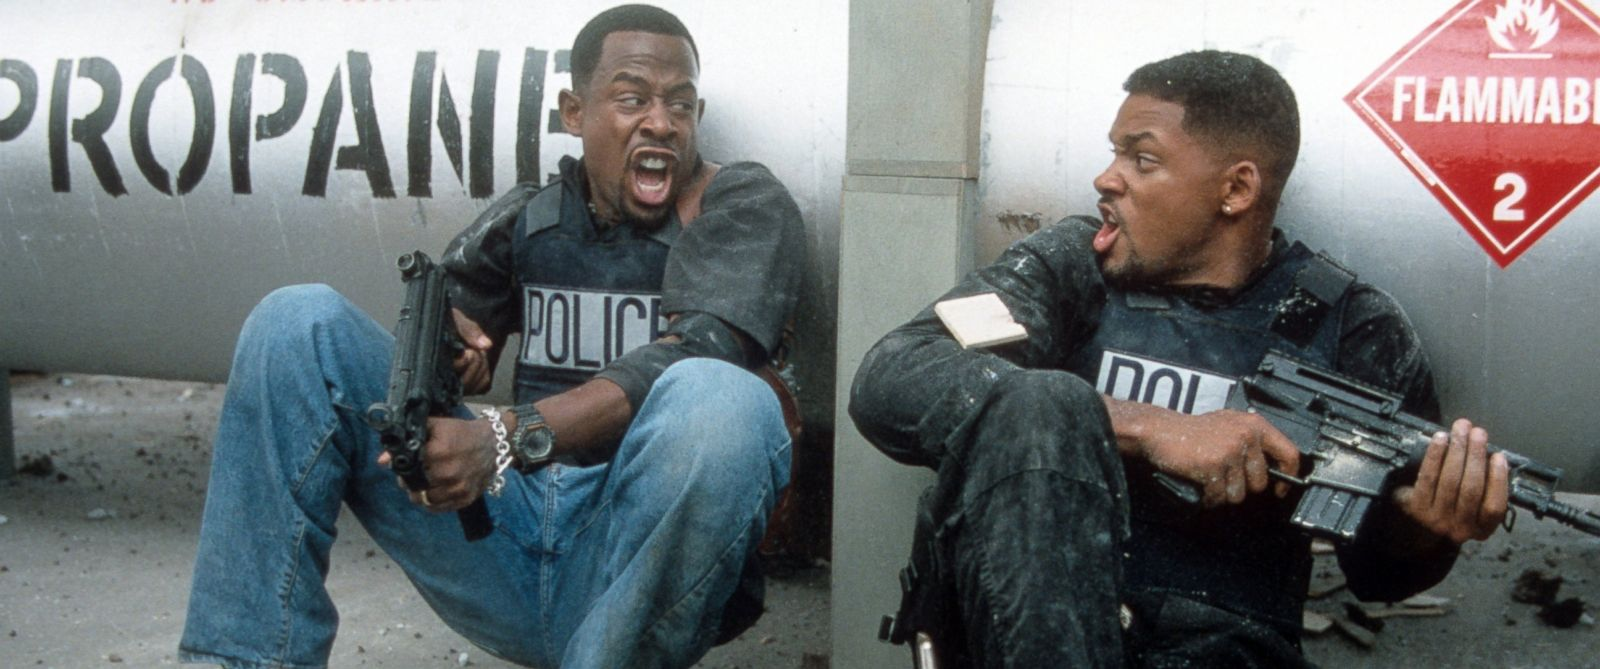 PHOTO: Martin Lawrence and Will Smith defend themselves in a scene from the film Bad Boys, 1995.